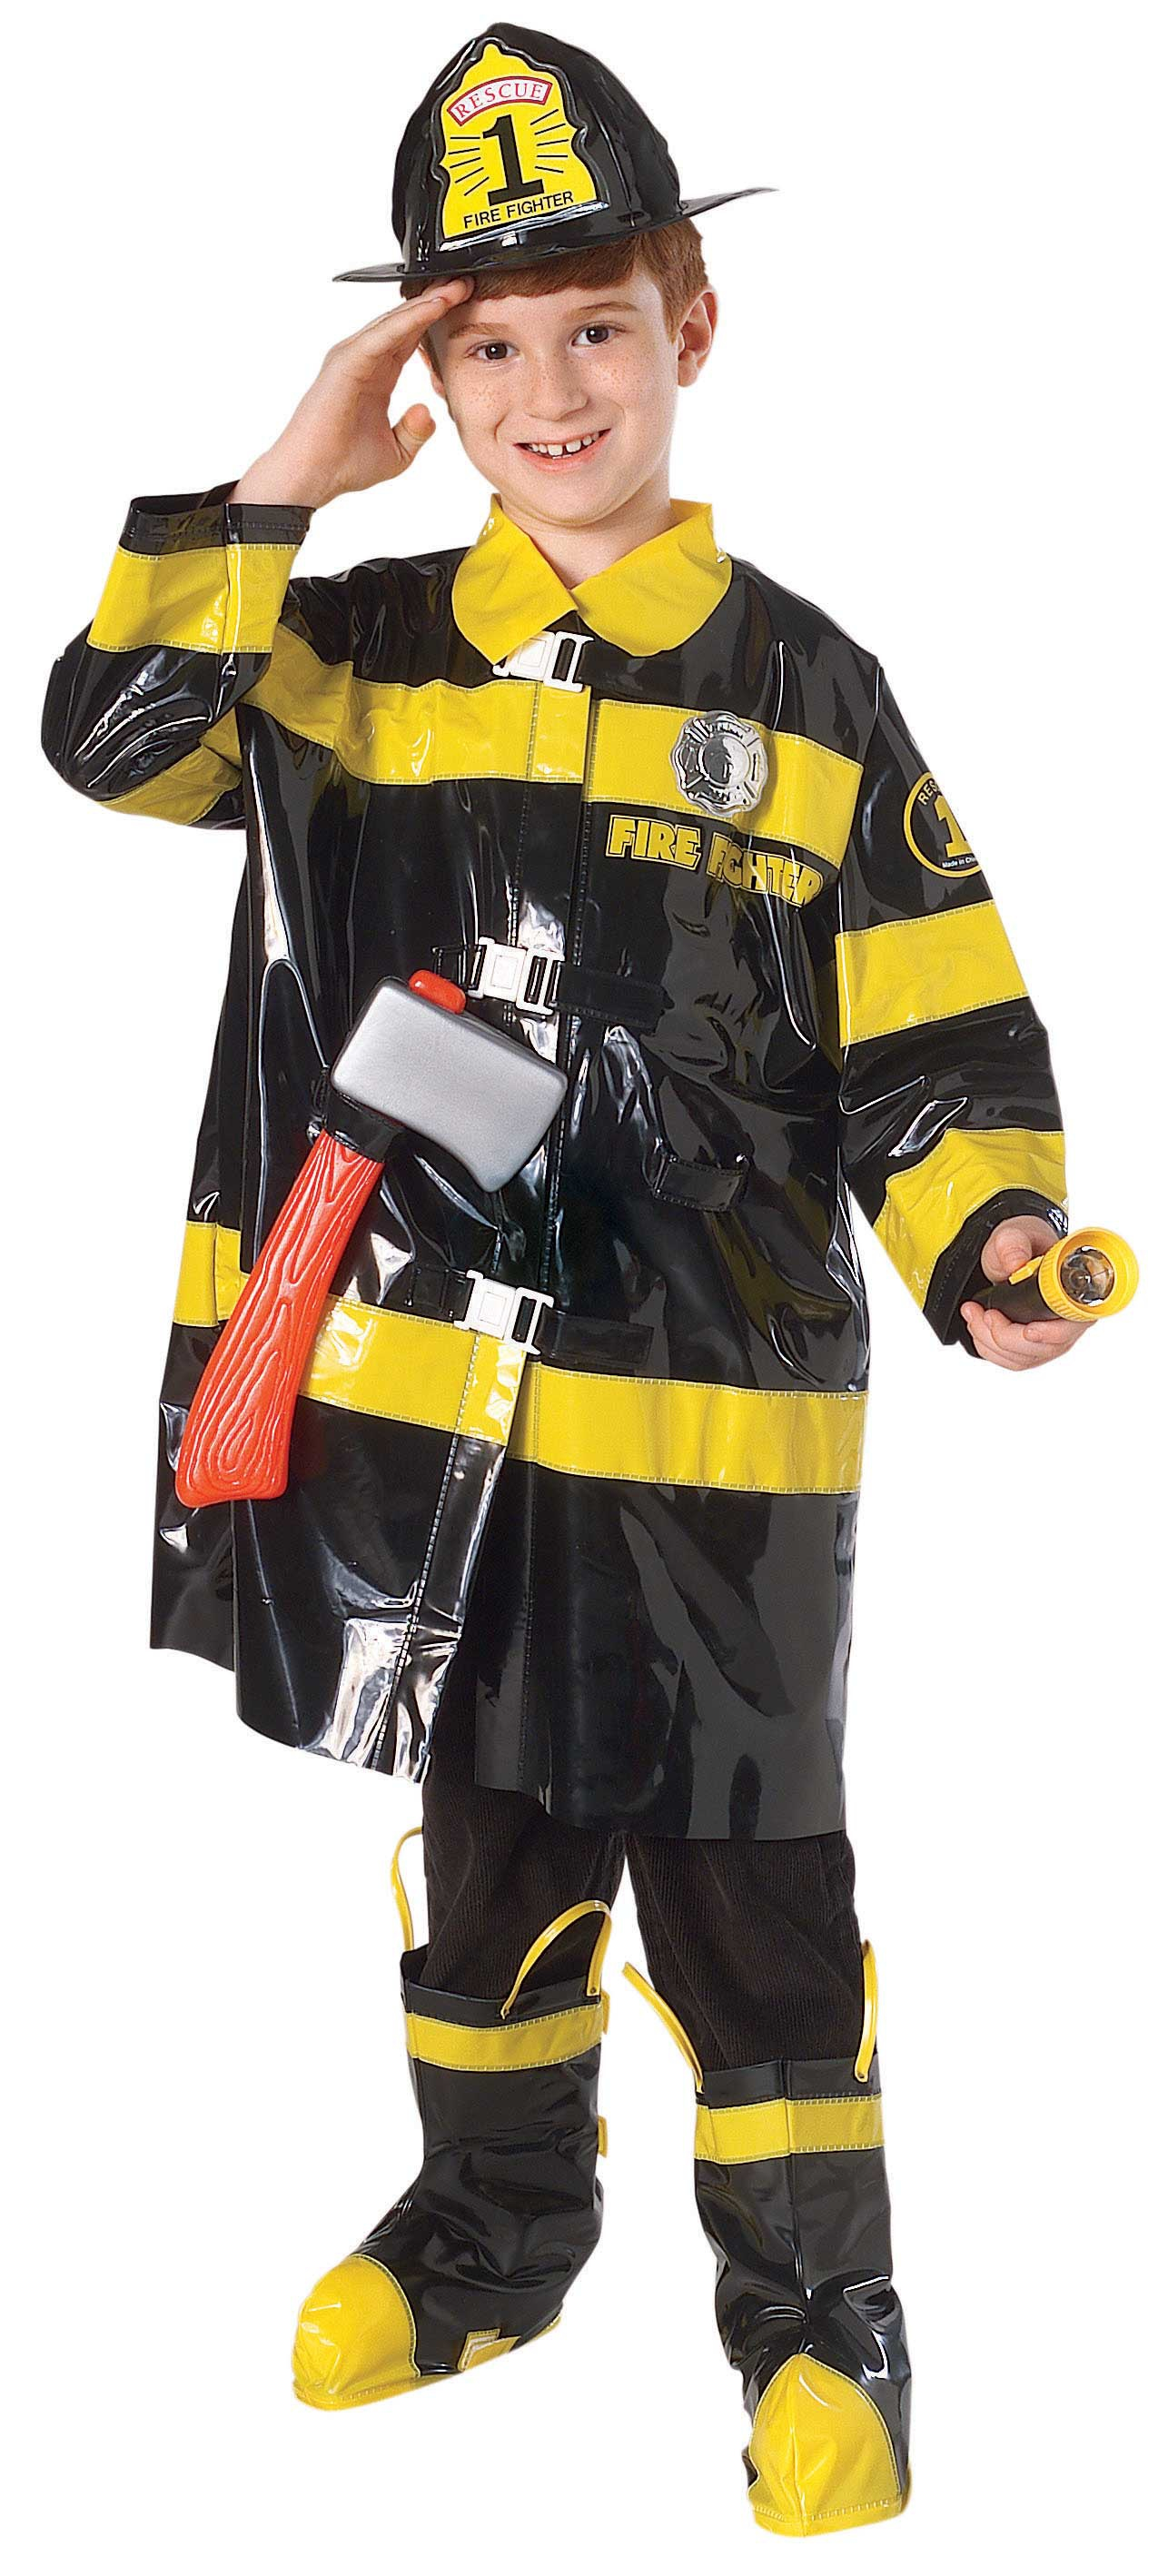 Find great deals on eBay for fireman kids costume. Shop with confidence.